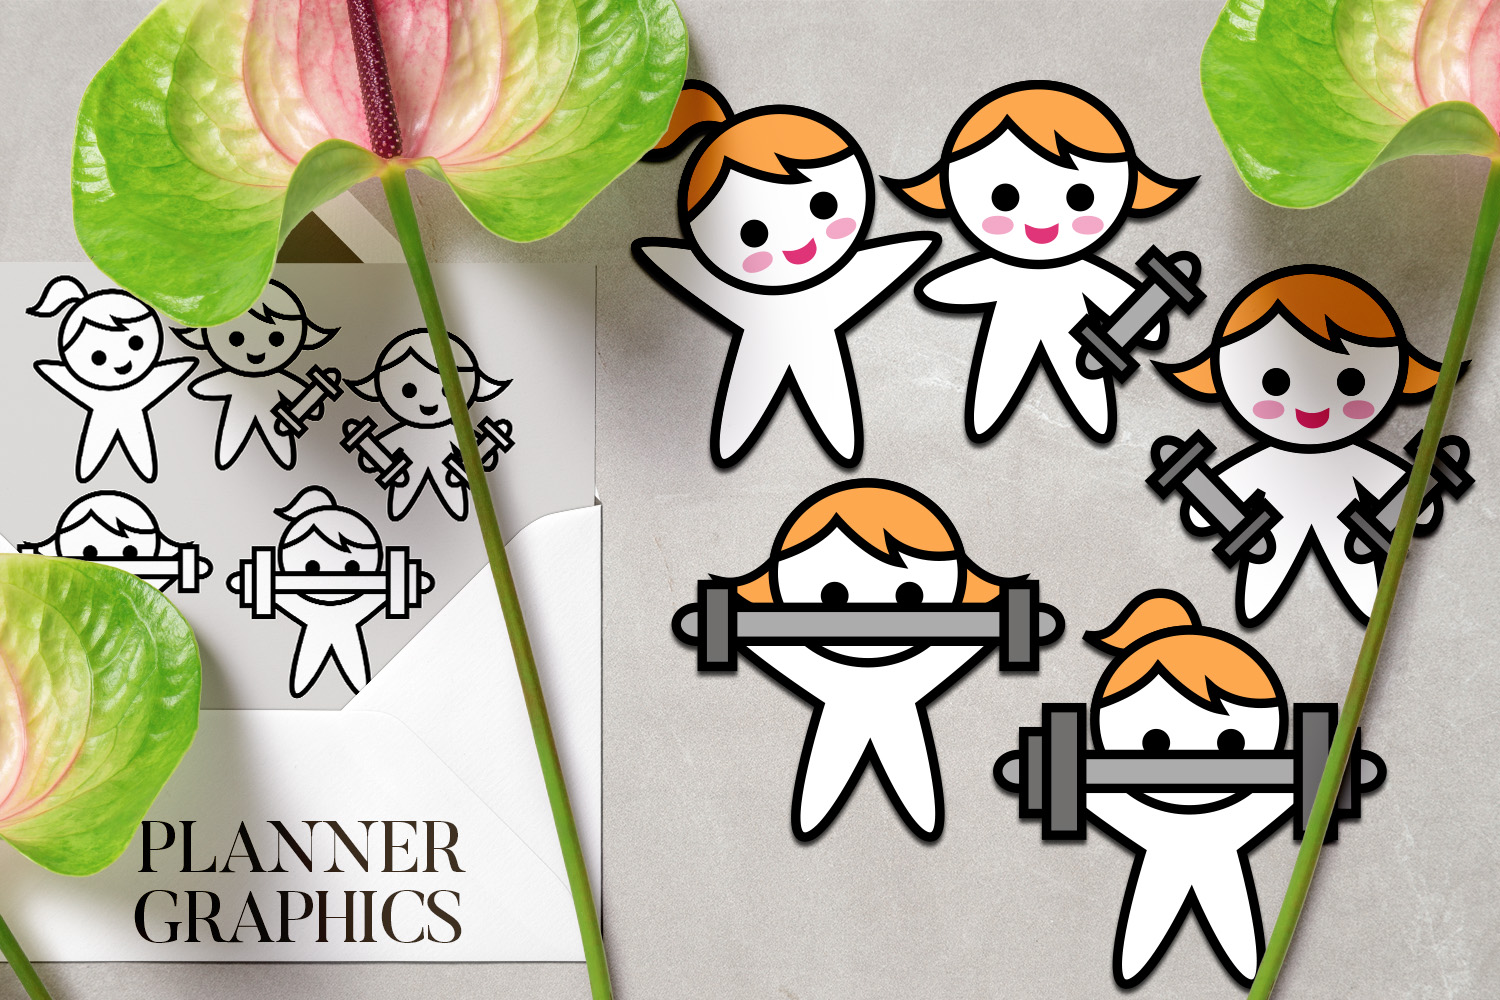 Hobby illustrations bundle - planner sticker graphics example image 6